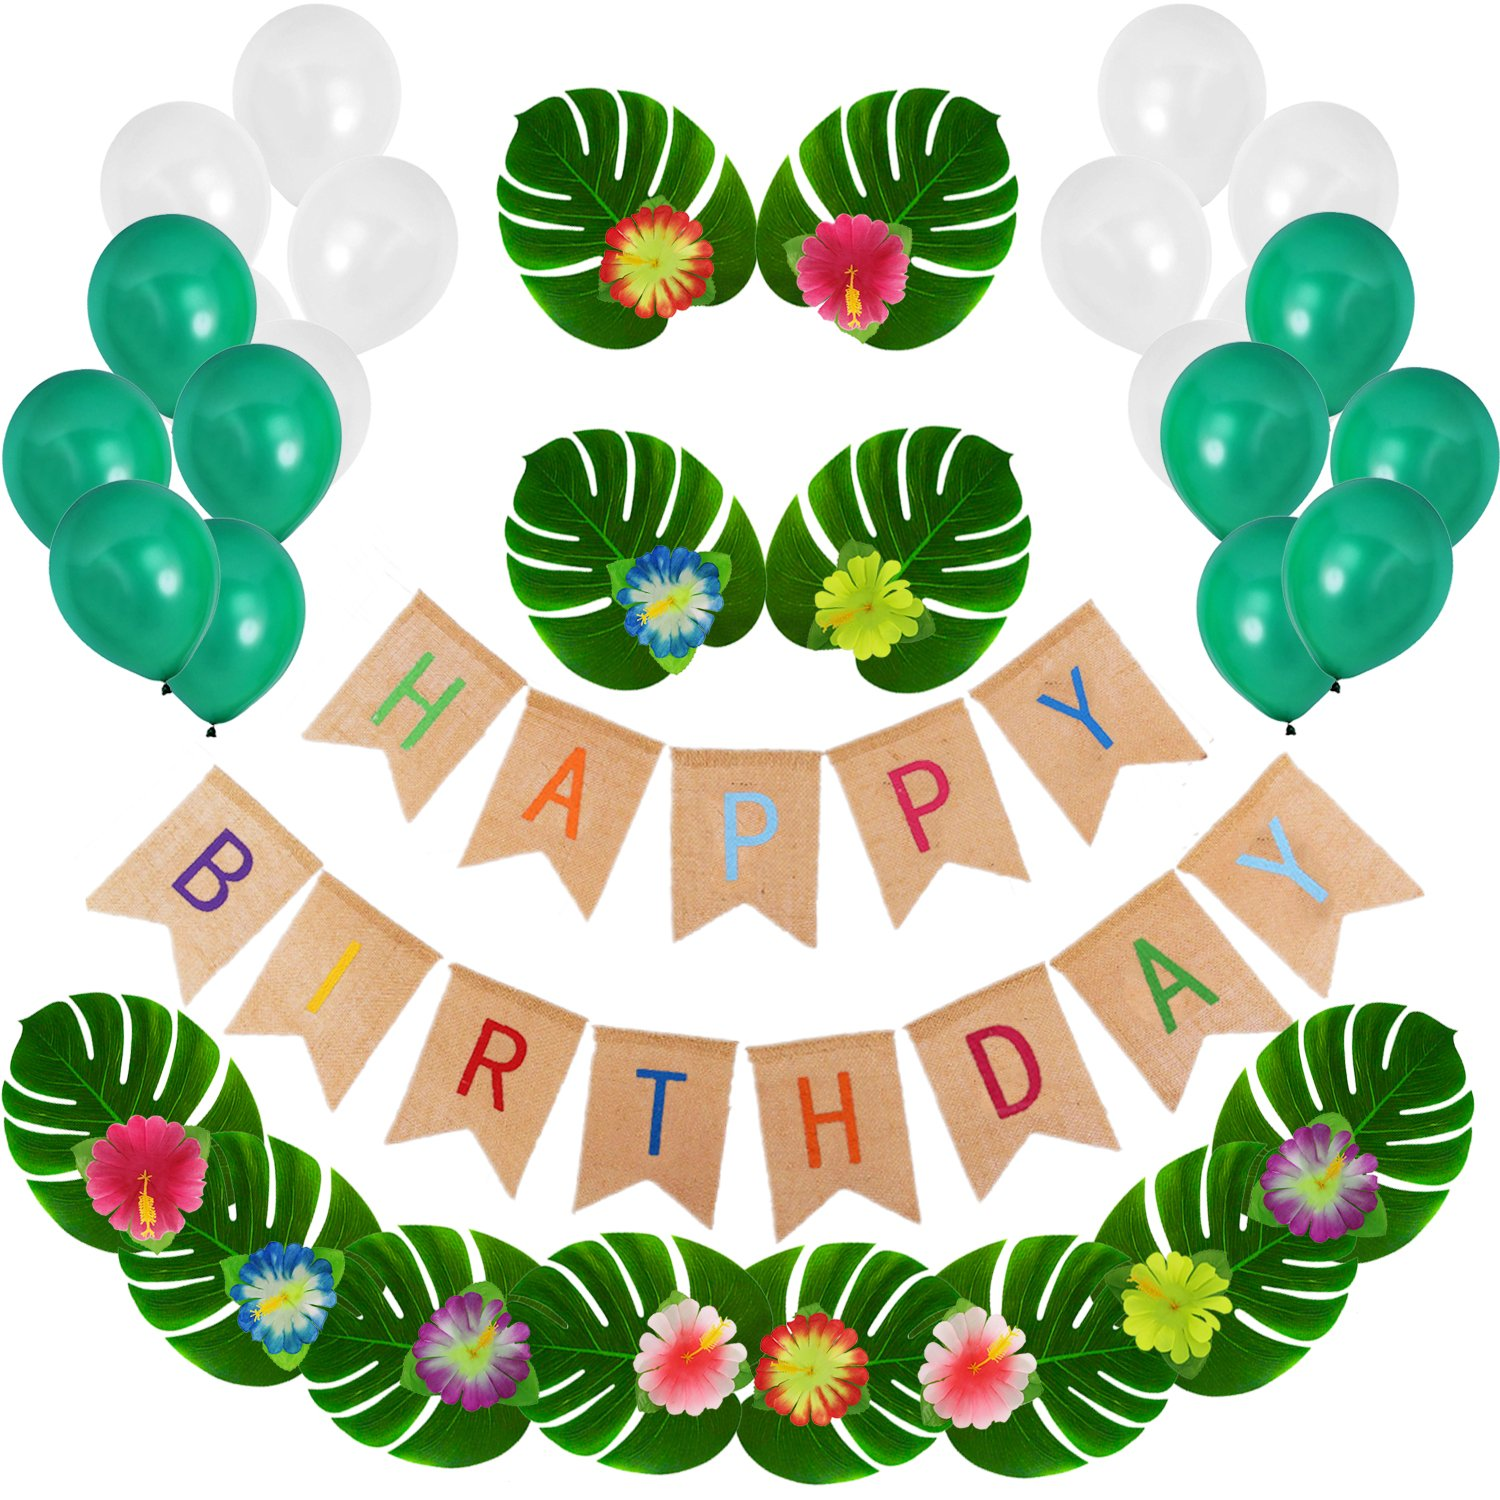 Happy Birthday Decorations - Jungle Beach Theme Birthday Party Decoration with Artificial Plant Leaves and Hibiscus Flowers, Burlap Happy Birthday Banner TD025